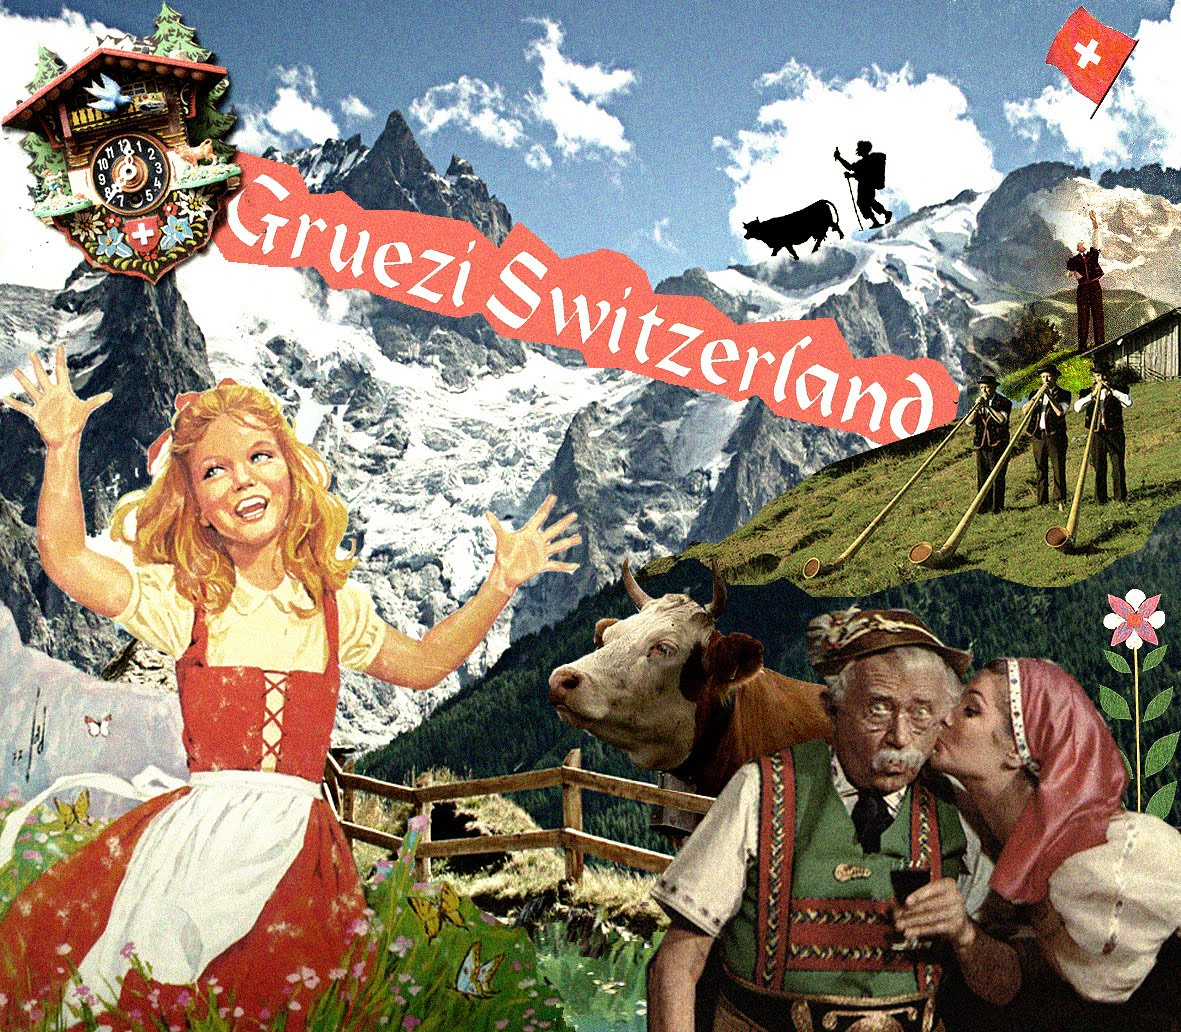 The Swiss Culture published by Alexandre Walen